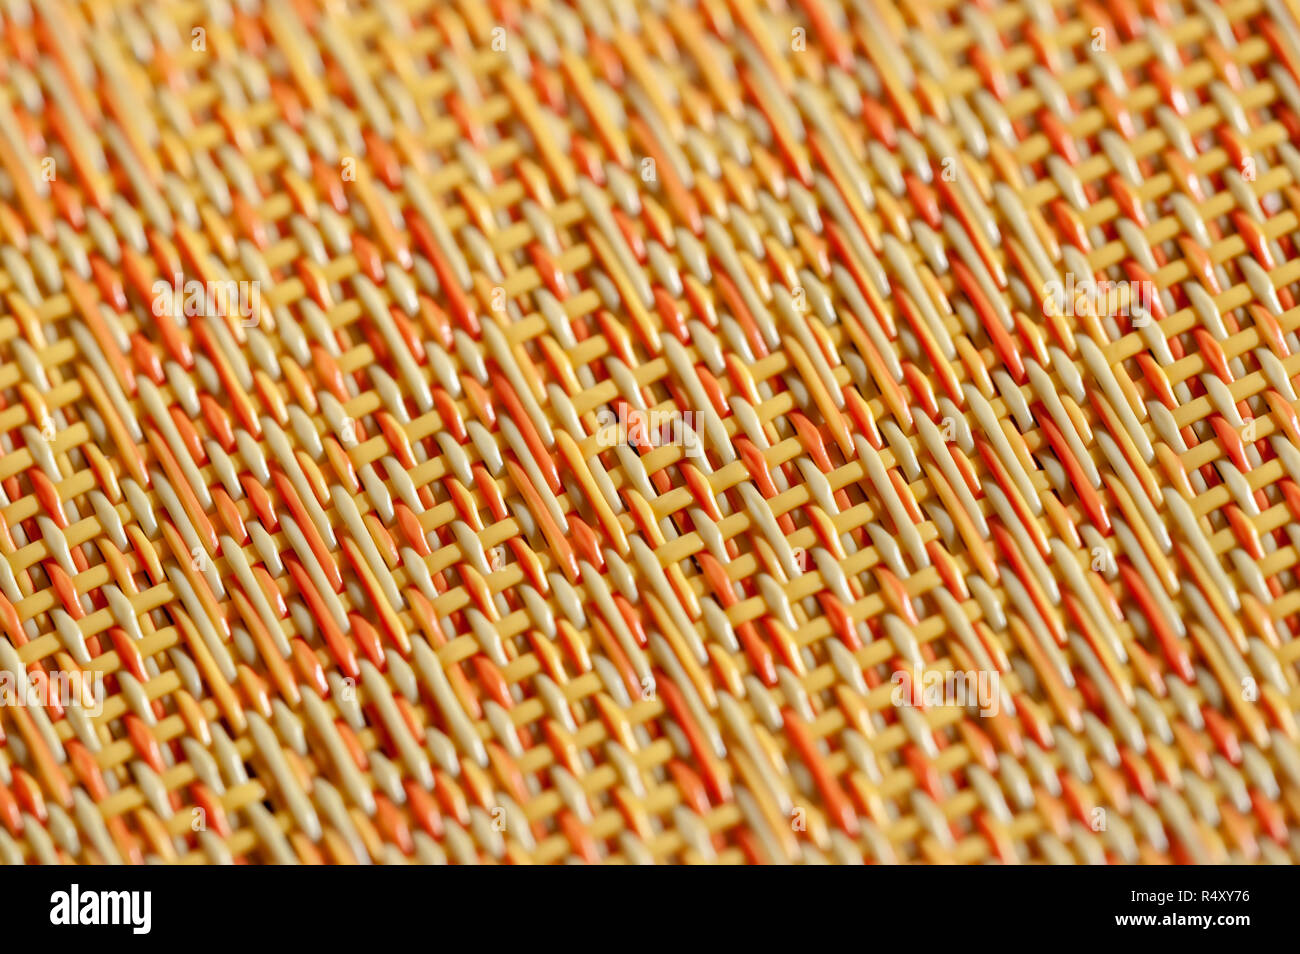 Warm colors of orange, red and yellow in an abstract woven background. - Stock Image